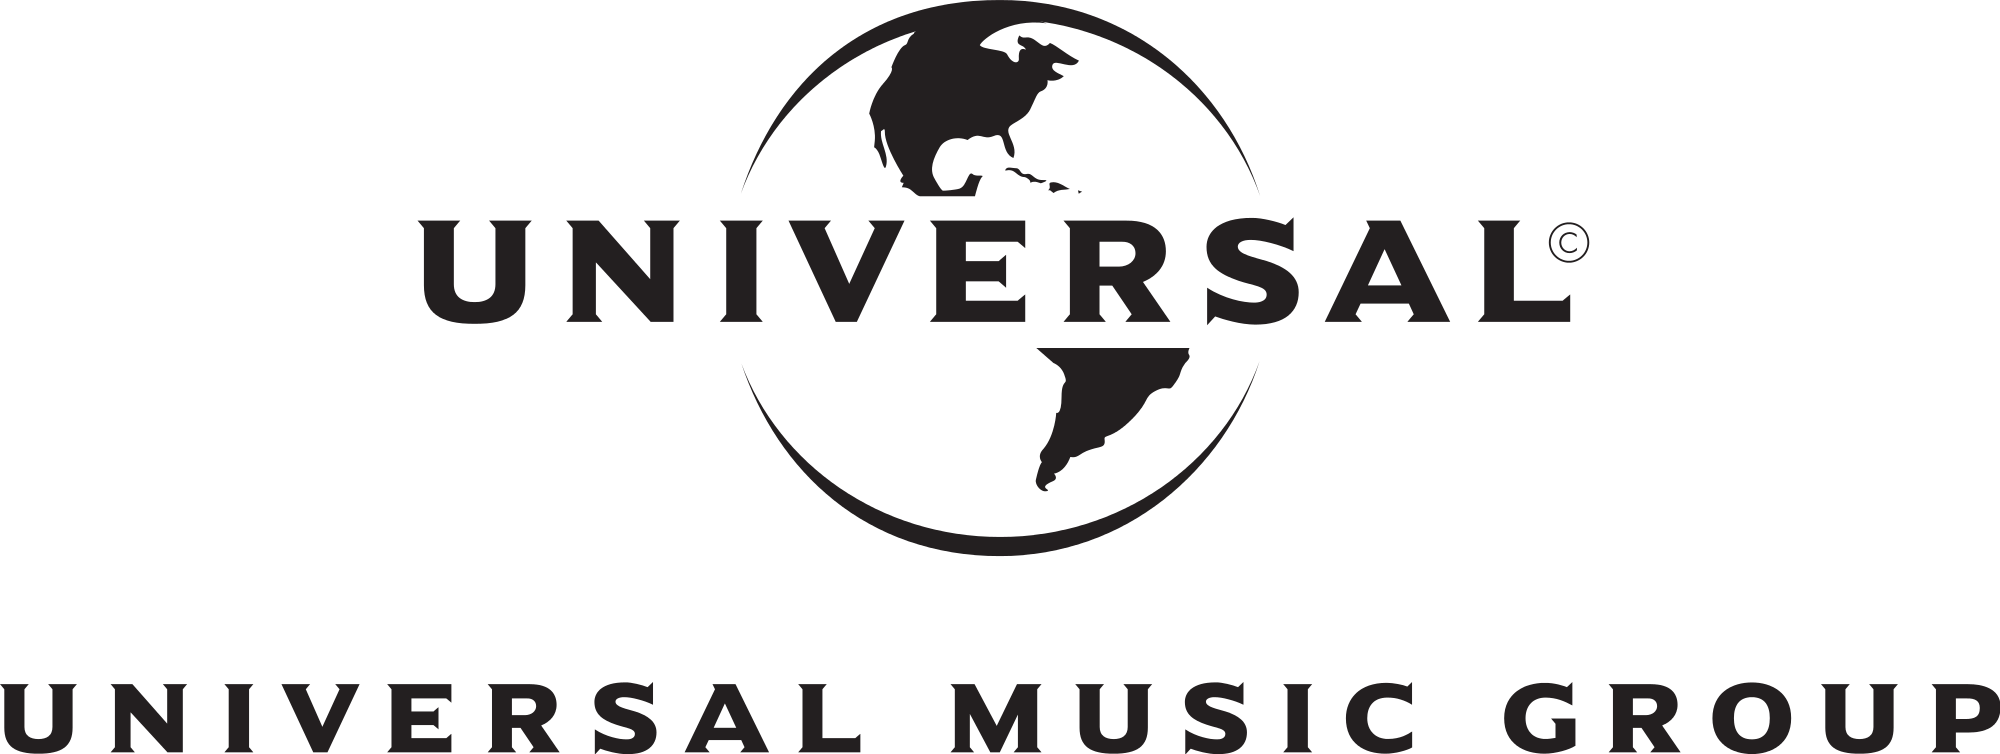 Universal Music Group, the world's leading music company.